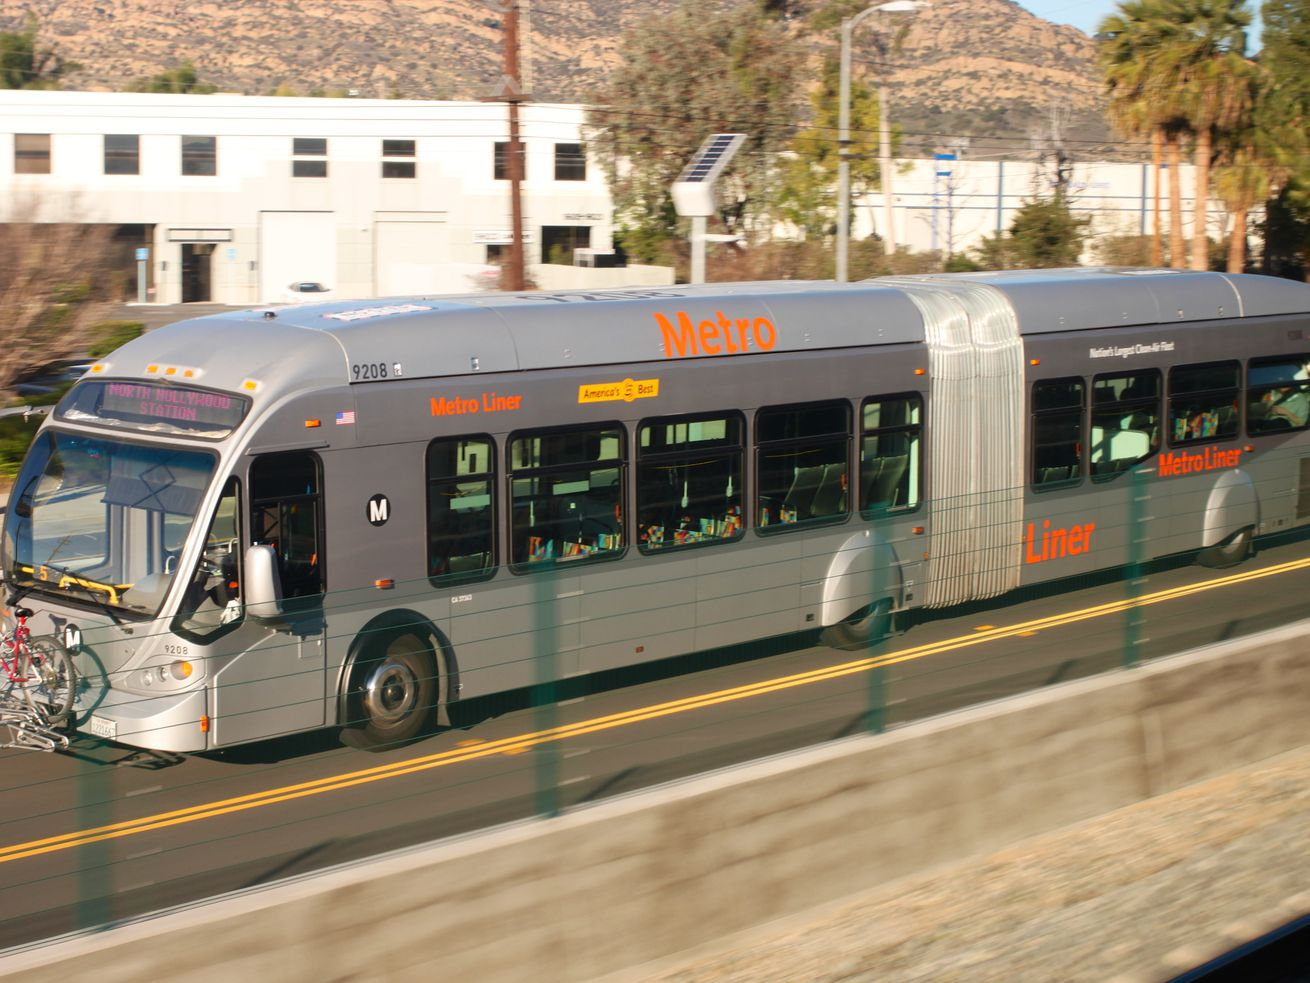 The Orange Line runs between North Hollywood and Chatsworth.